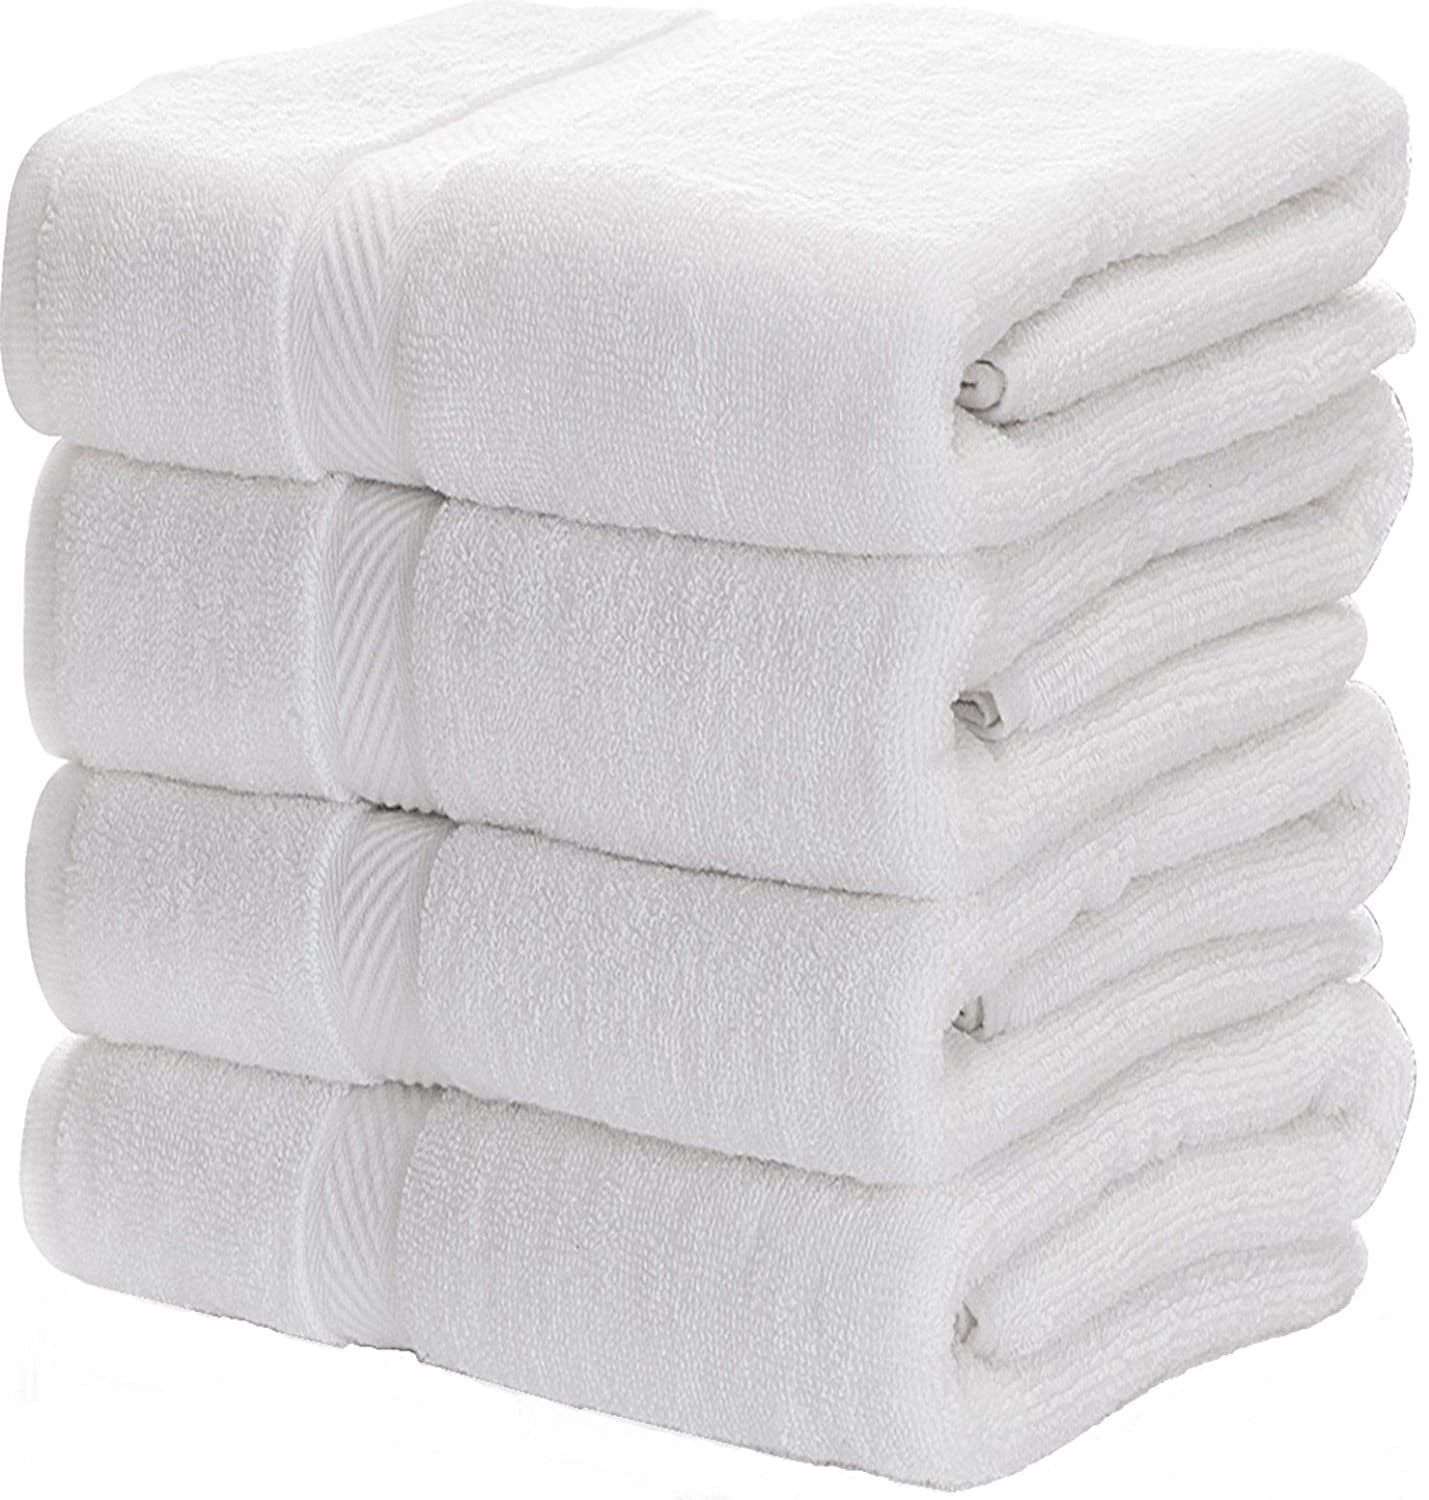 Top 10 Best Bath Towels In 2020 Reviews White Bath Towels